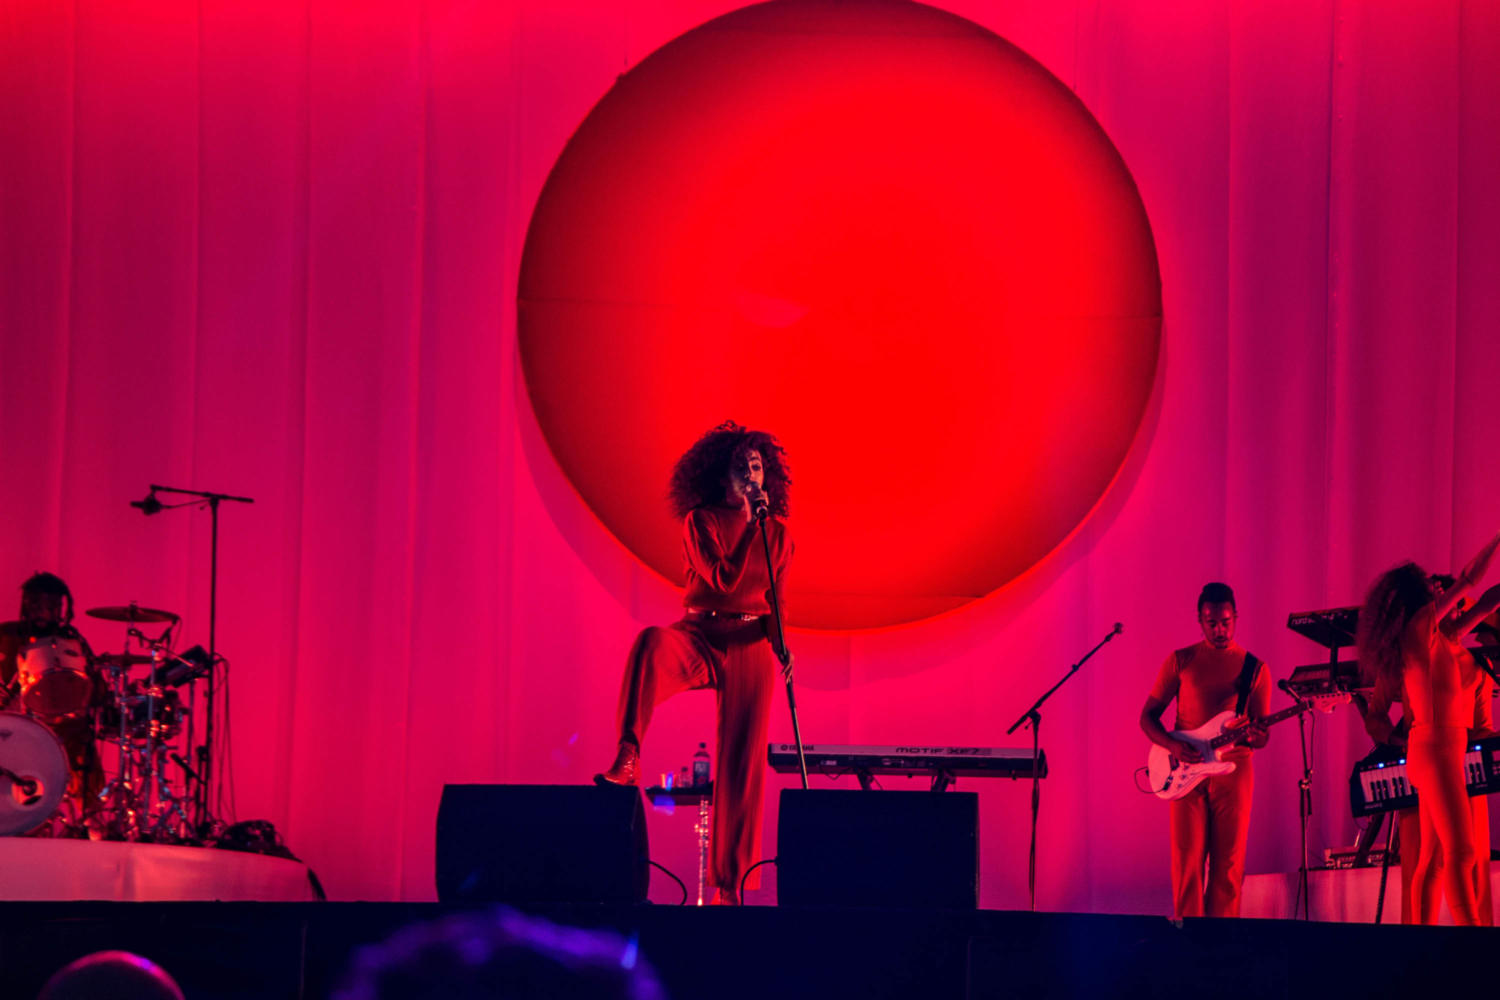 Solange, Erykah Badu, James Blake & Interpol to play NOS Primavera Sound 2019